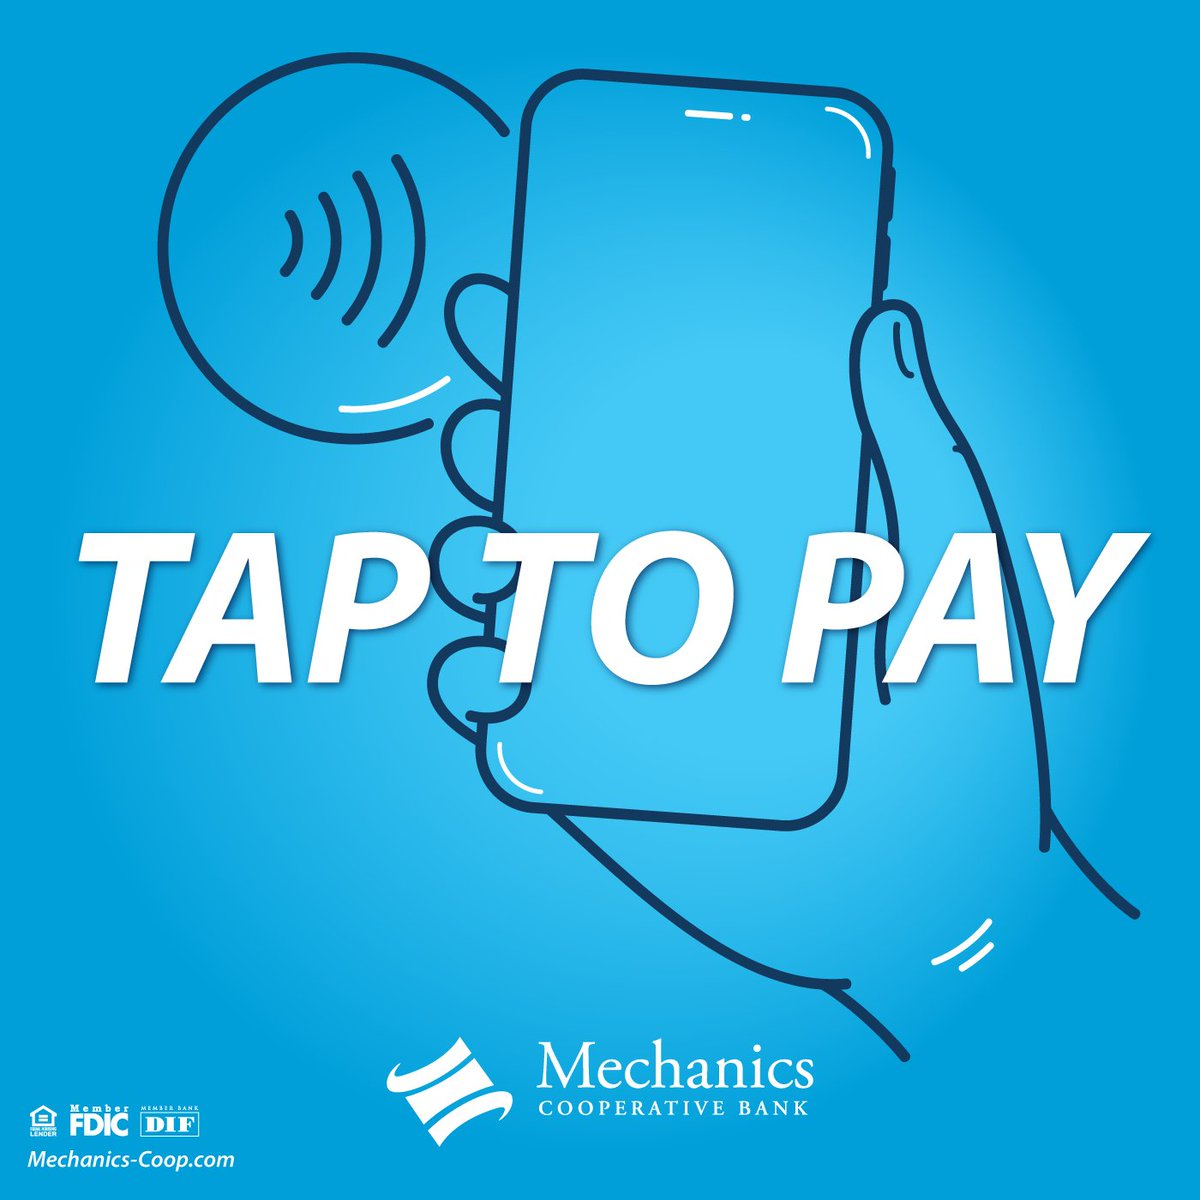 The contactless way to pay - With Apple Pay, Google Pay & Samsung Pay! Available for your Mechanics Cooperative Bank #DebitCard. For more info: https://mechanics-coop.com/personal/digital-wallets/…pic.twitter.com/xa7IbPnT3I